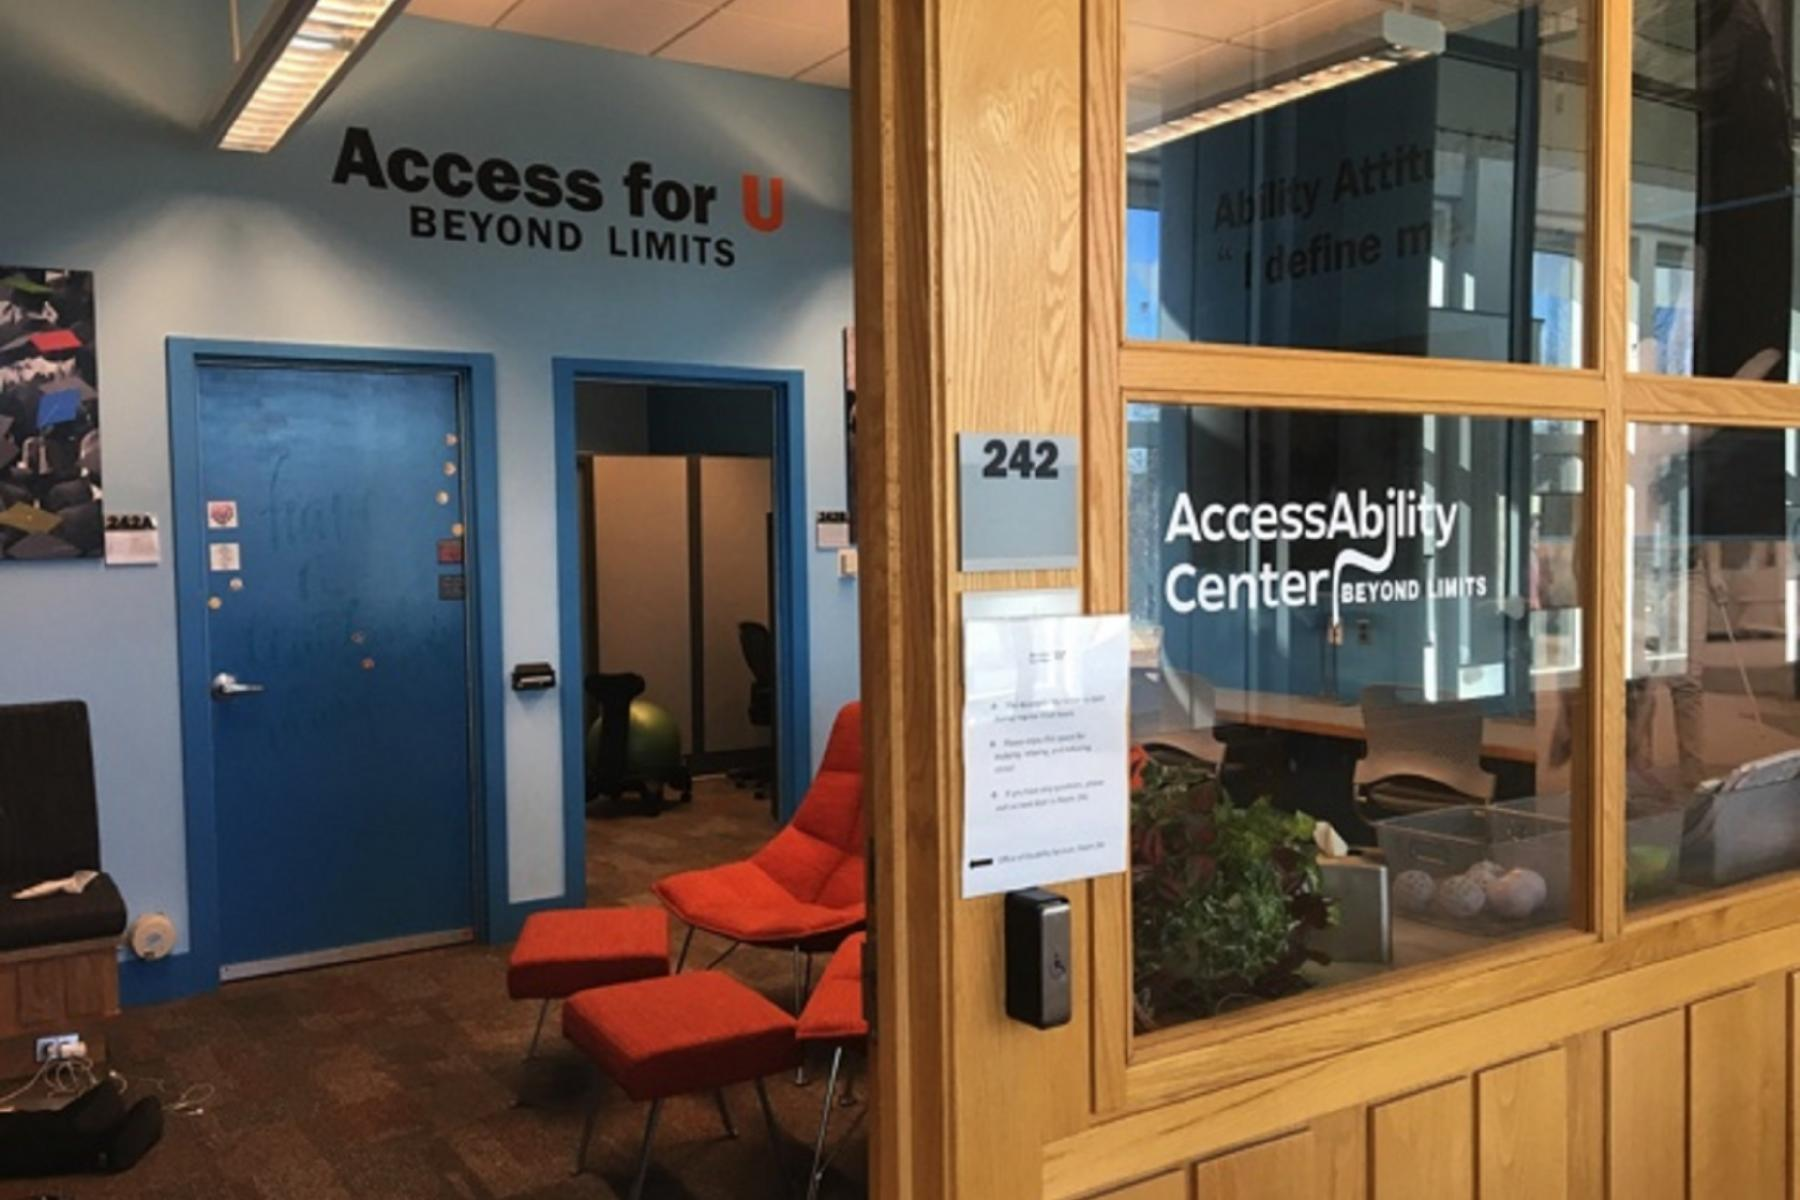 AccessAbility Center at Princeton